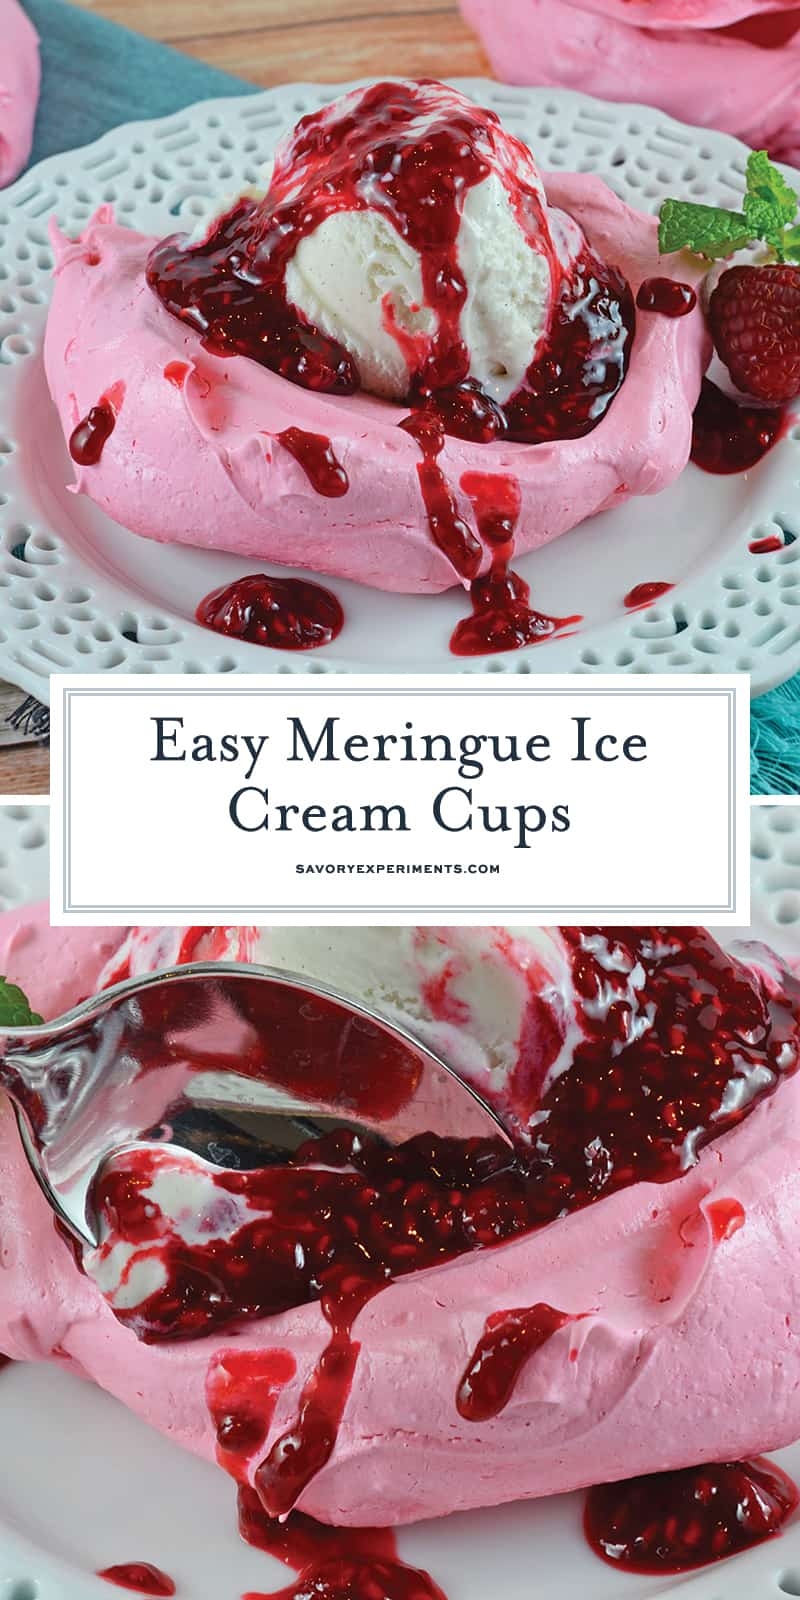 Easy Meringue Ice Cream Cups are the perfect dinner party dessert or special occasion treat that all your family and friends will enjoy! #meringuerecipe #howtomakemeringue #meringues #valentinesdaydessert www.savoryexperiments.com